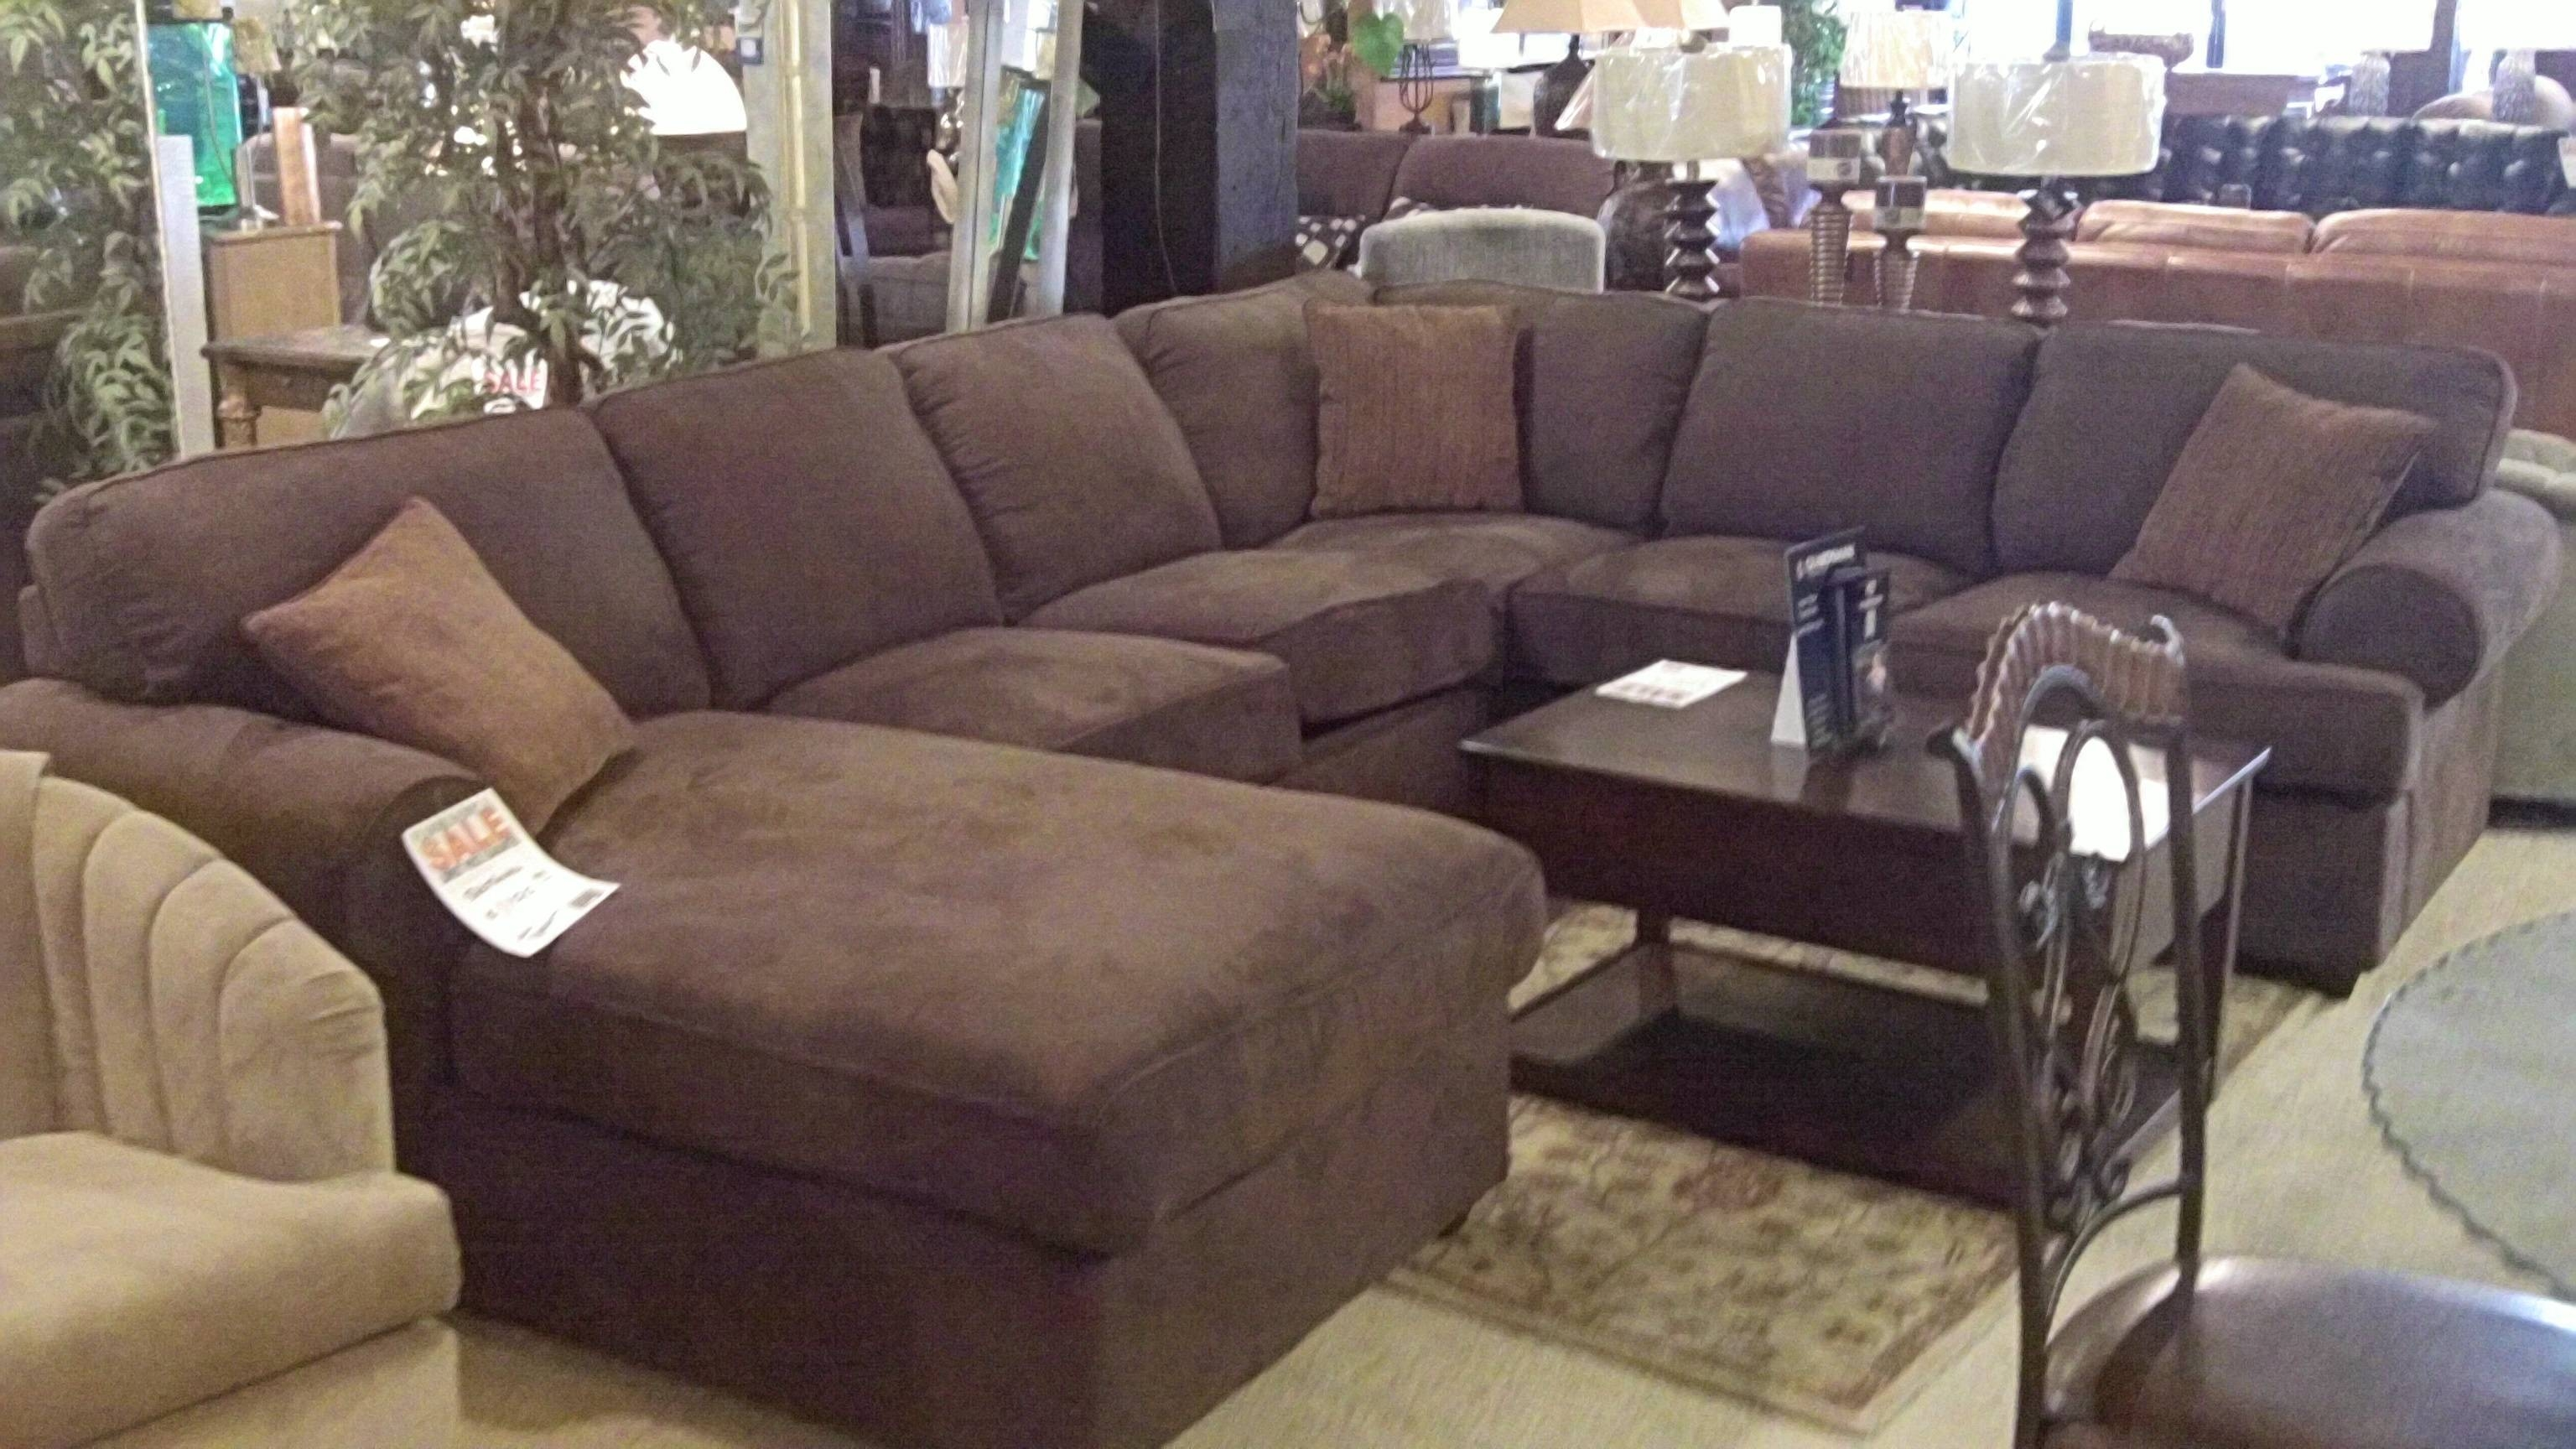 Sofas Center : Charming Oversized Sectional Sofa With Chaise About in Sectional Sofas Portland (Image 26 of 30)